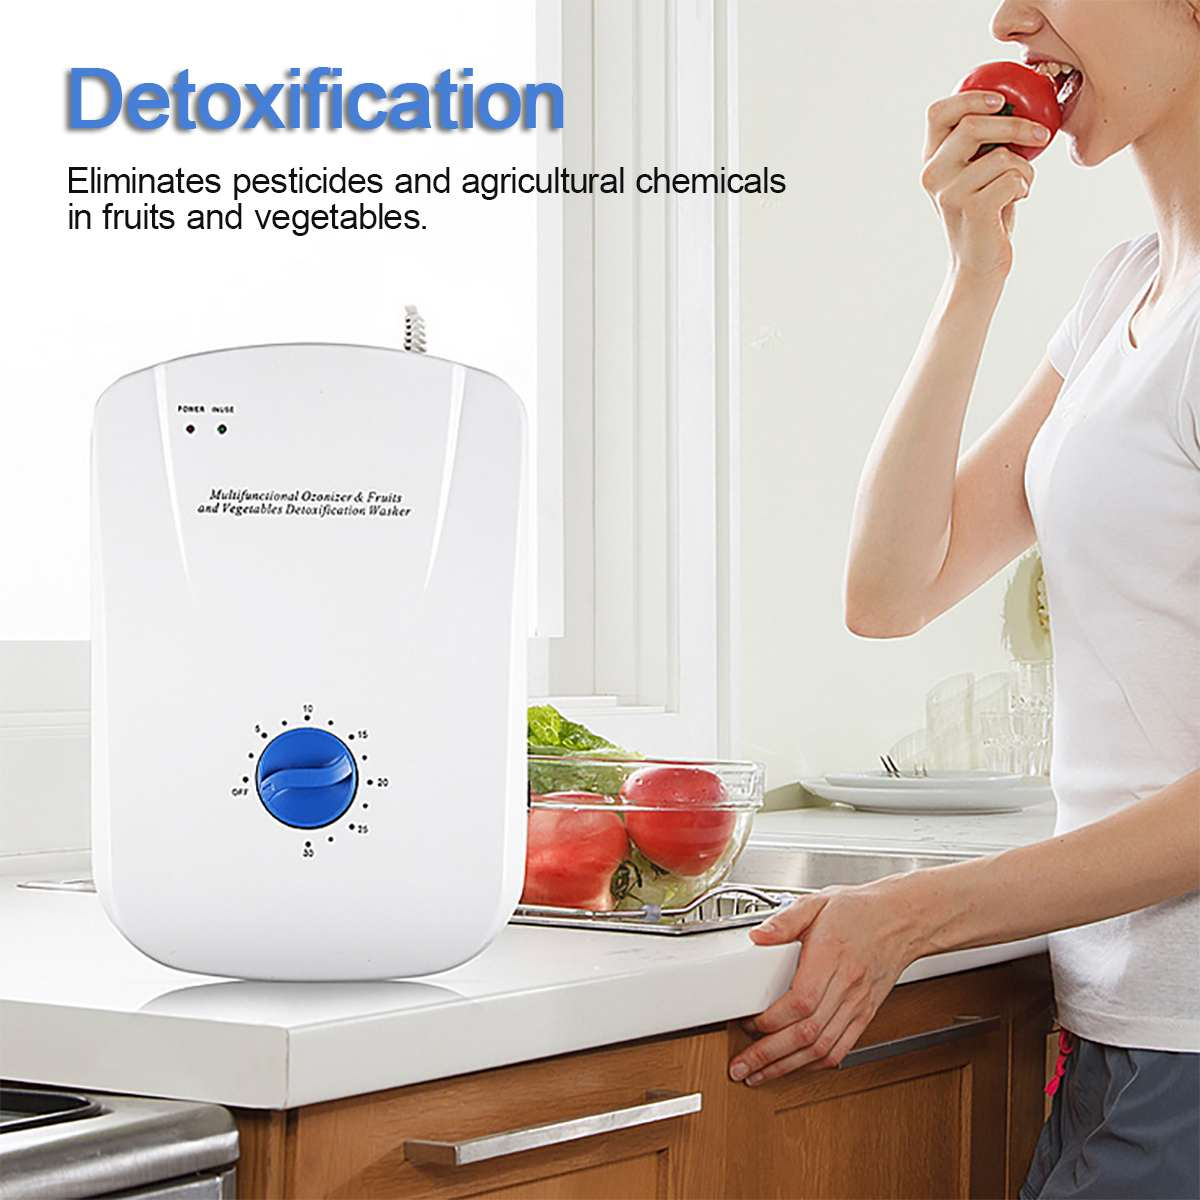 400mg/h Portable Ozone Generator Ozonator ionizer Multifunctional fruit and vegetable sterilizer Timer Air Purifiers 110-220V